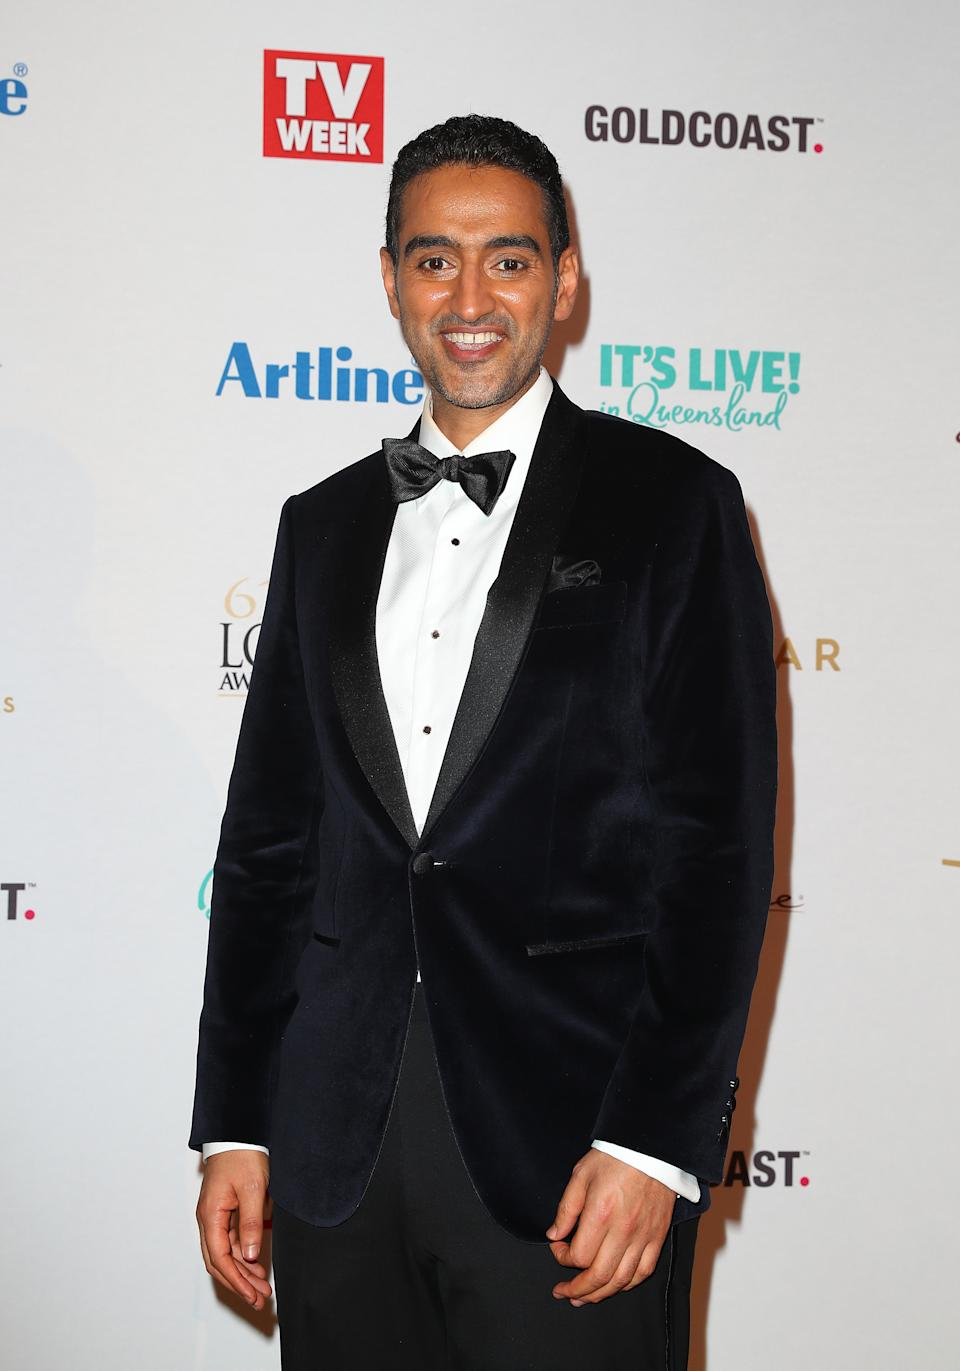 Waleed Aly was another one Leon guessed at, though he doesn't seem to have confirmation on this theory. Photo: Getty Images